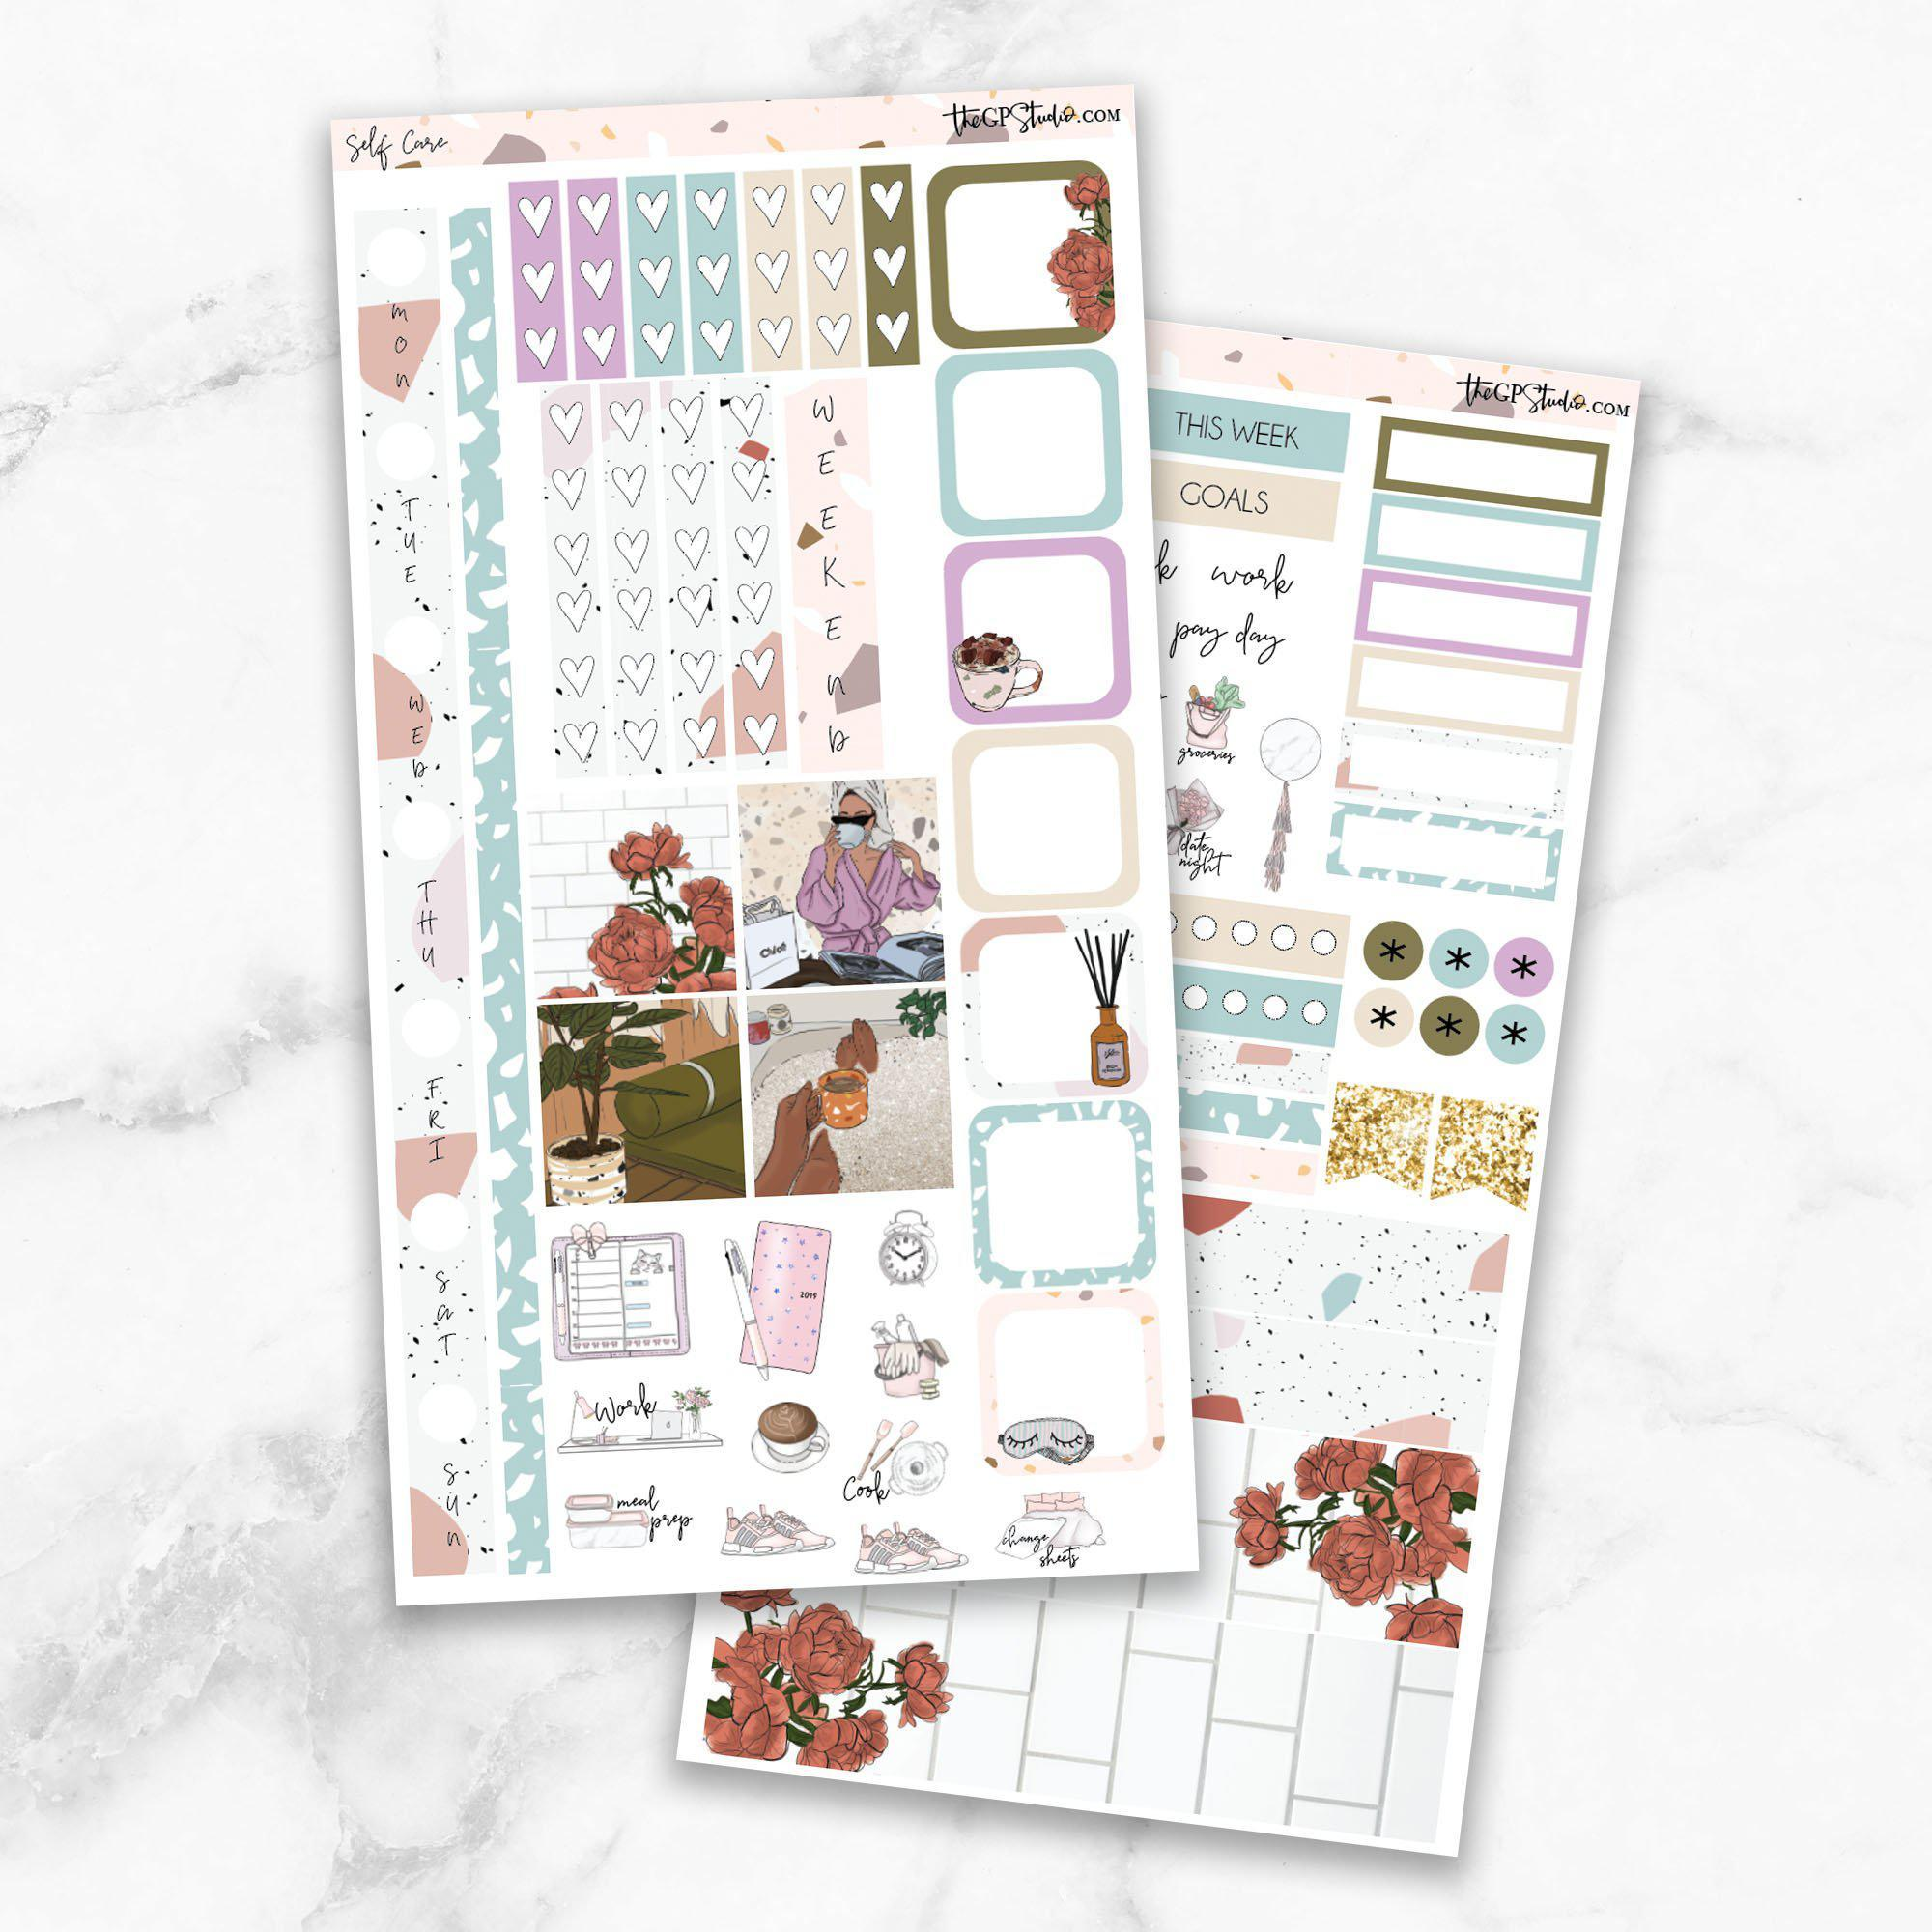 SELF CARE Hobonichi Weekly Size Planner Sticker Kit-The GP Studio